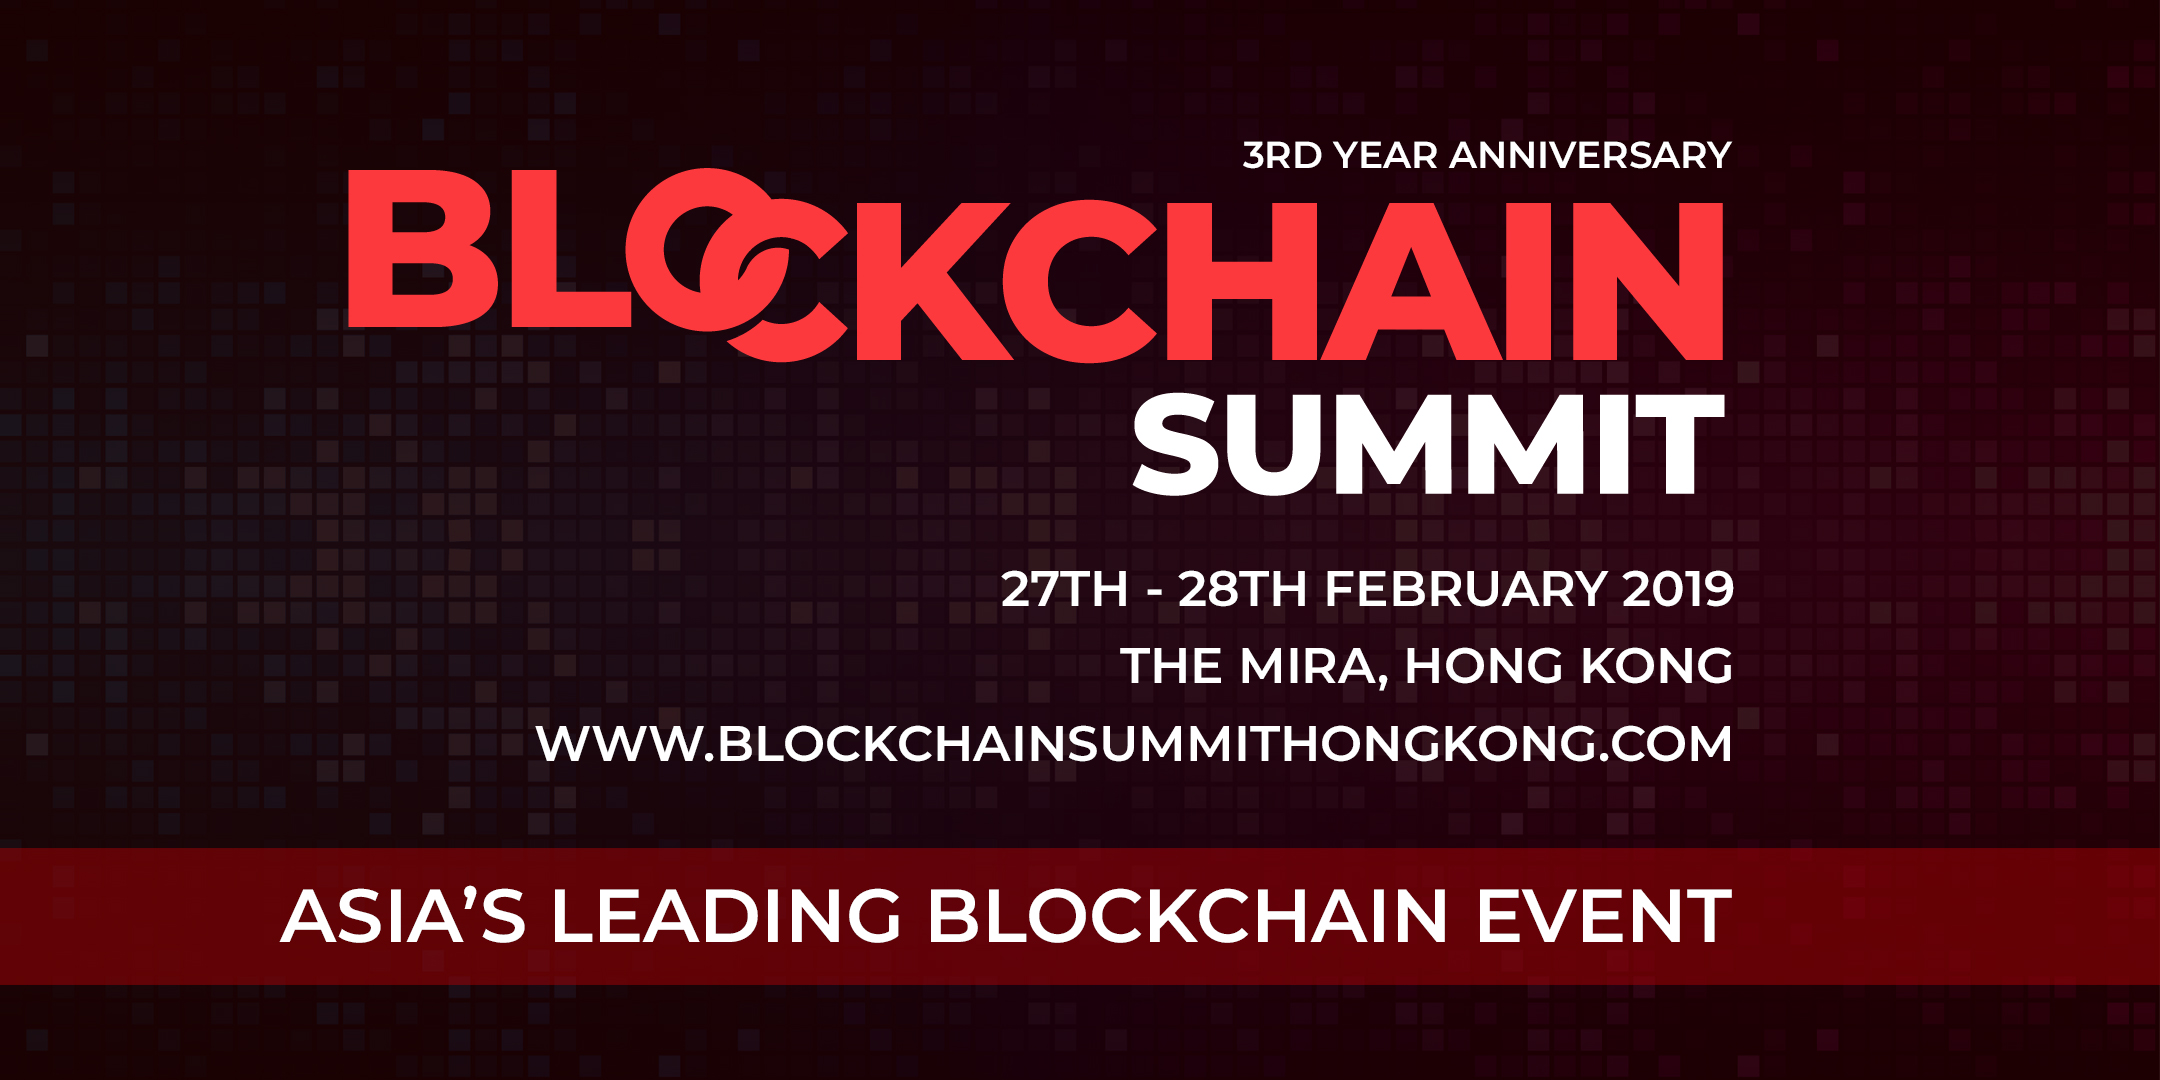 Blockchain Summit Hong Kong organized by Blockchain Summit Series